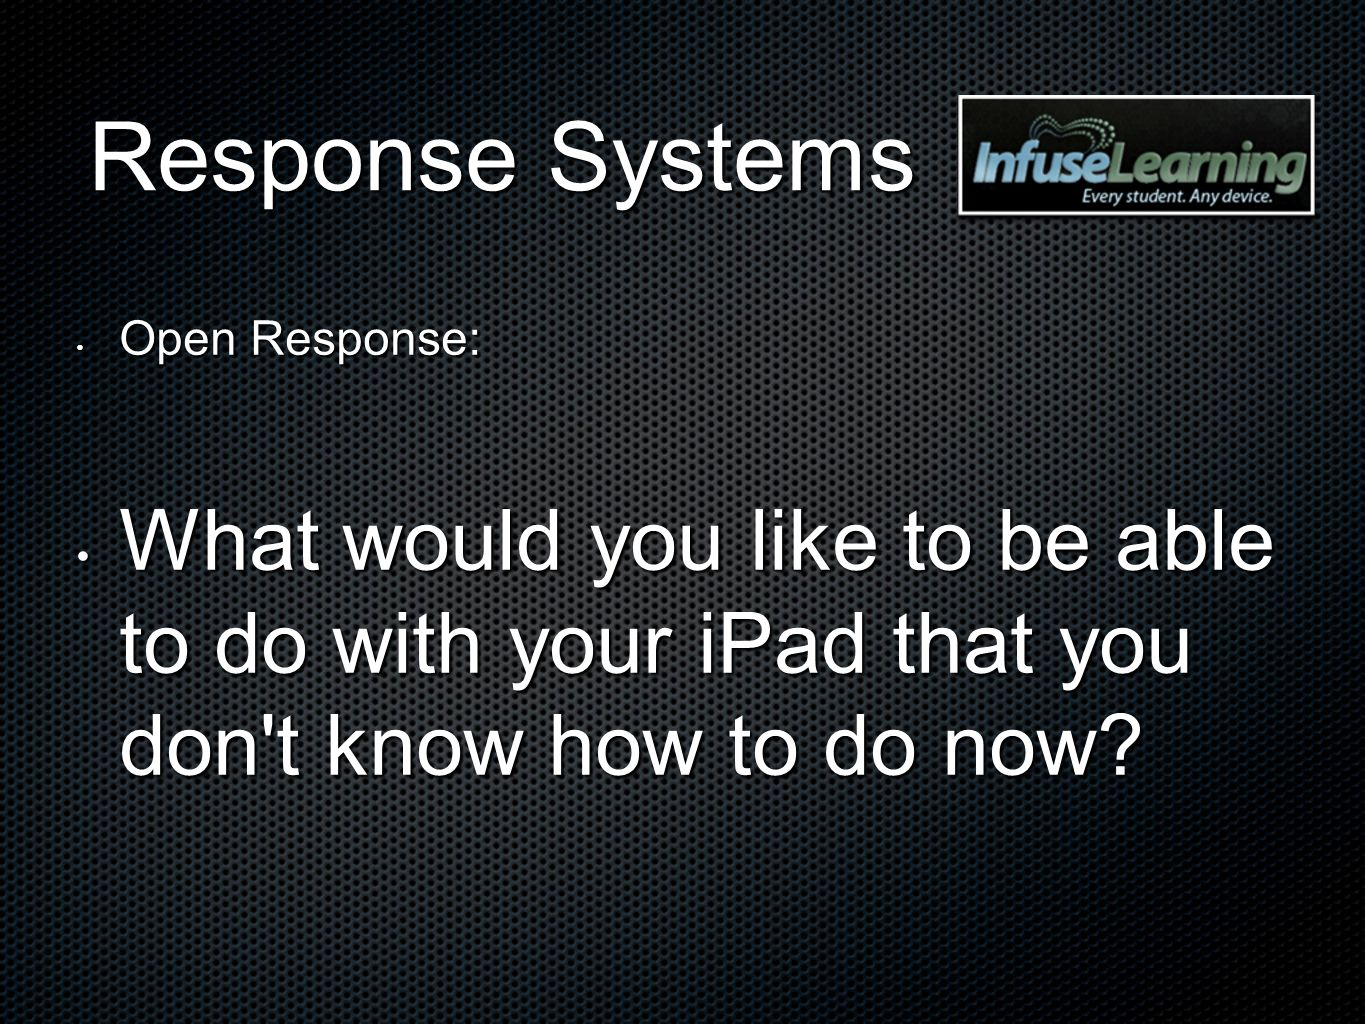 Response Systems Open Response: What would you like to be able to do with your iPad that you don t know how to do now